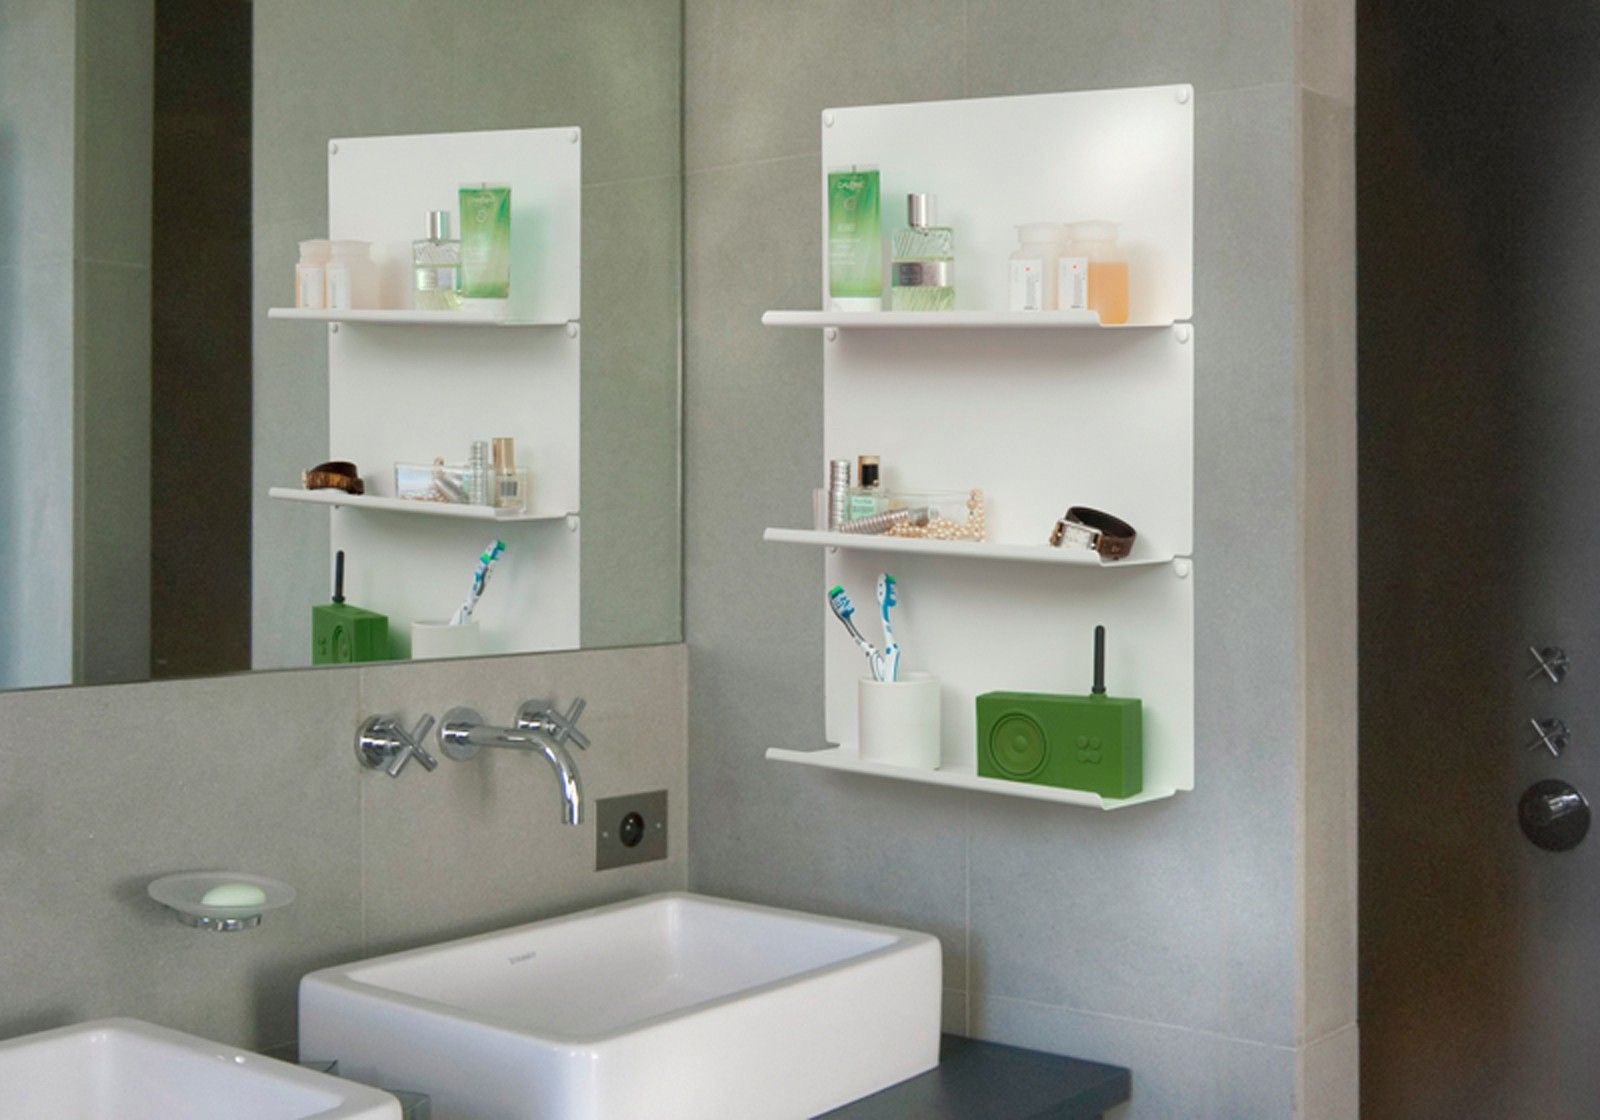 Bathroom wall shelf -  Set Of 2 Bathroom Wall Shelves